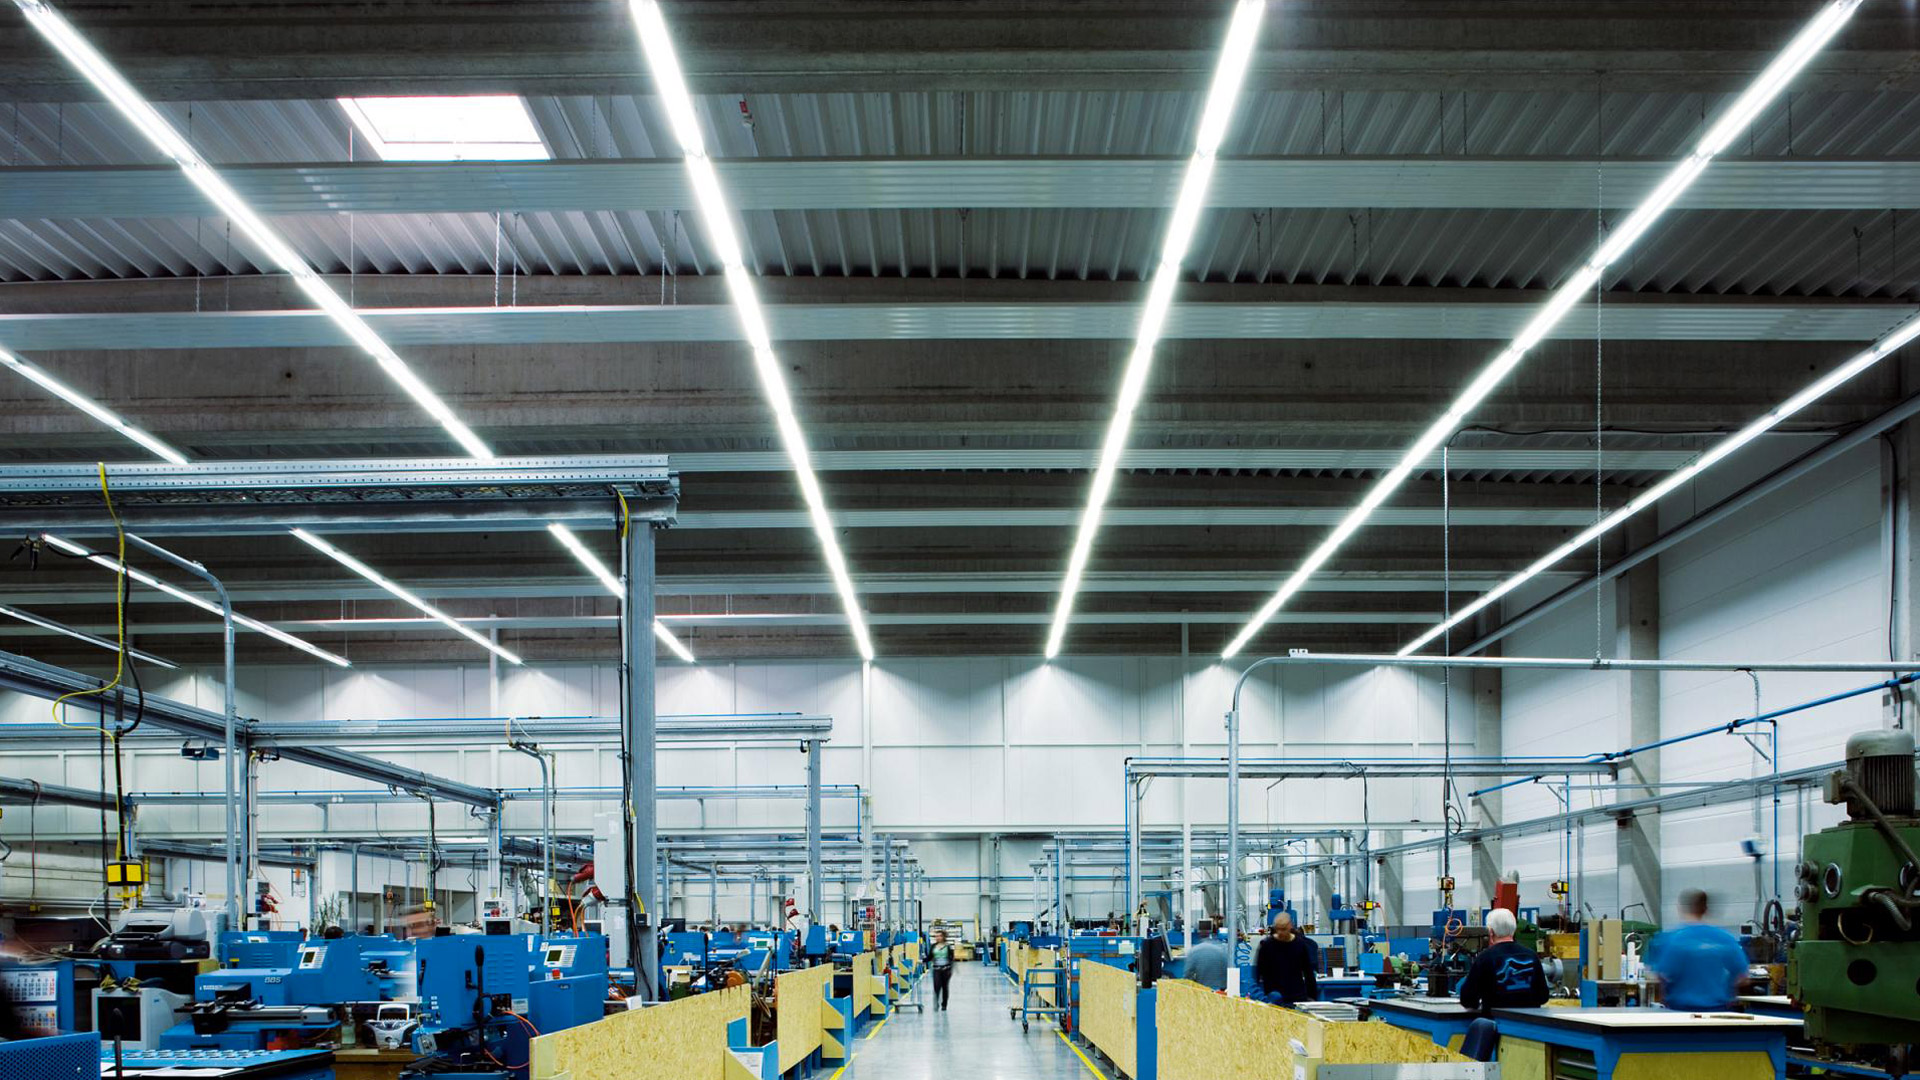 Plafoniere Industriali A Led : Flexsolight illuminazione industriale led